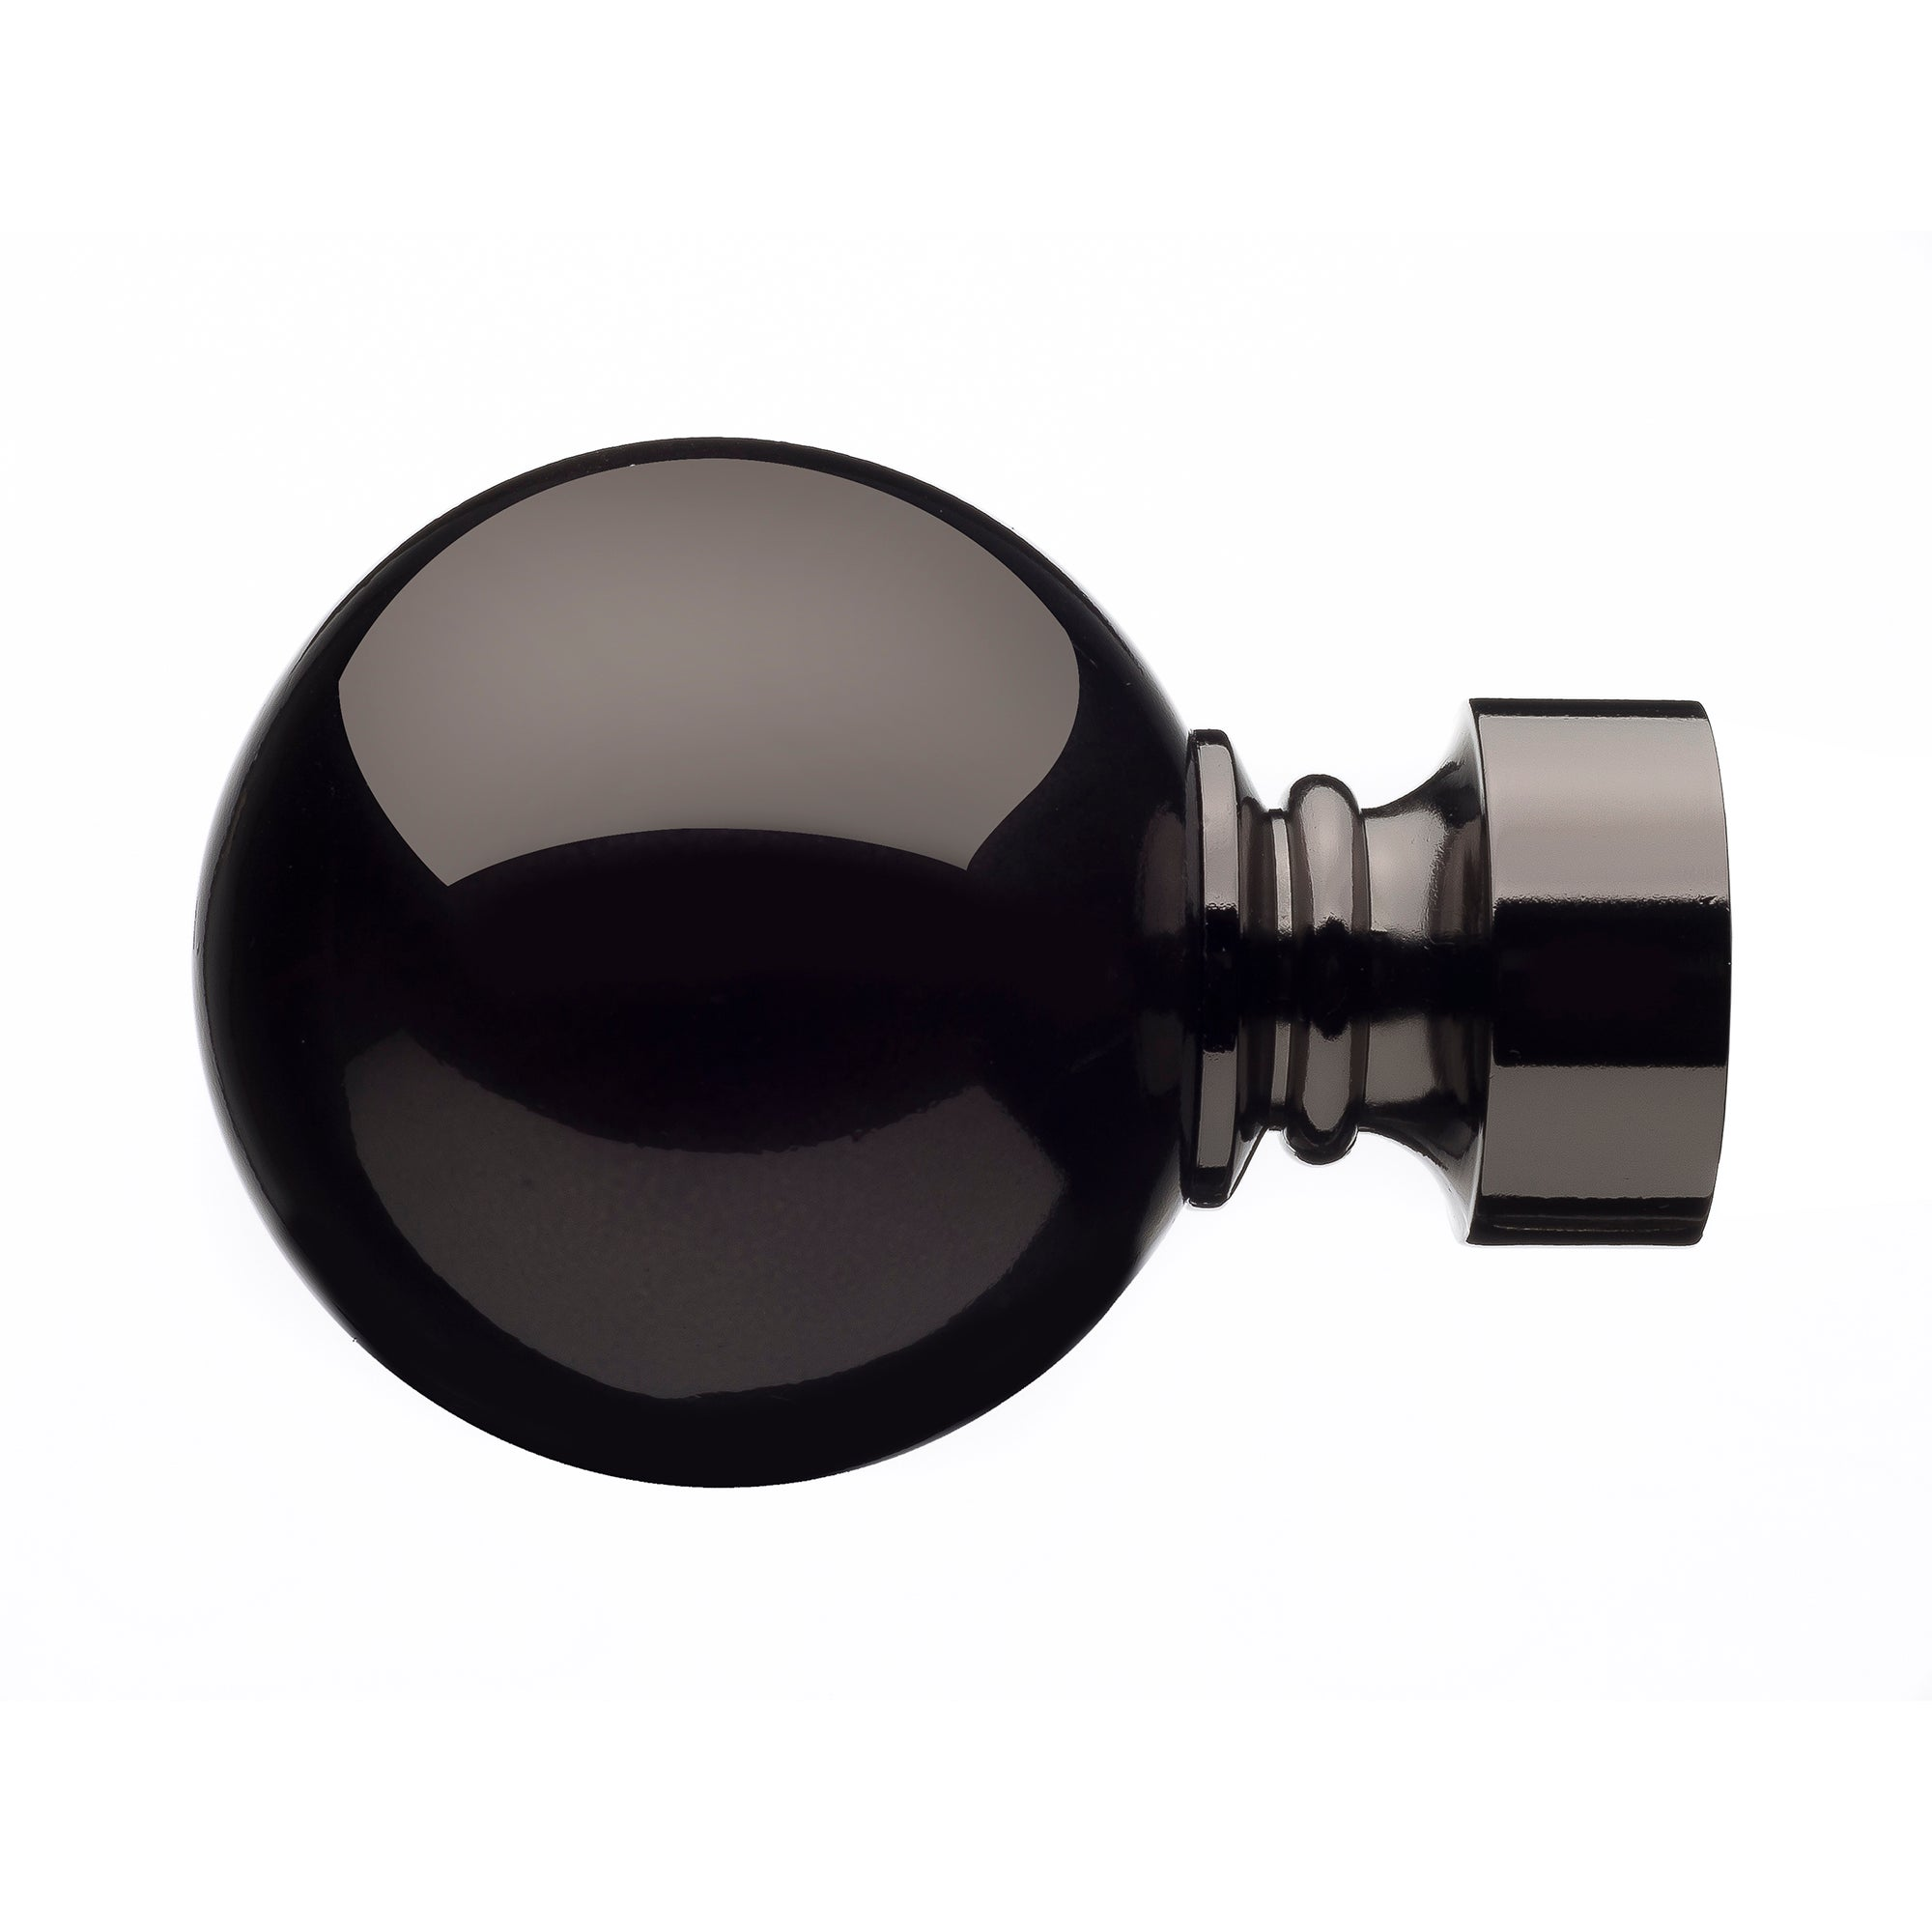 Mix and Match Collection Ashton Black Nickel Finials